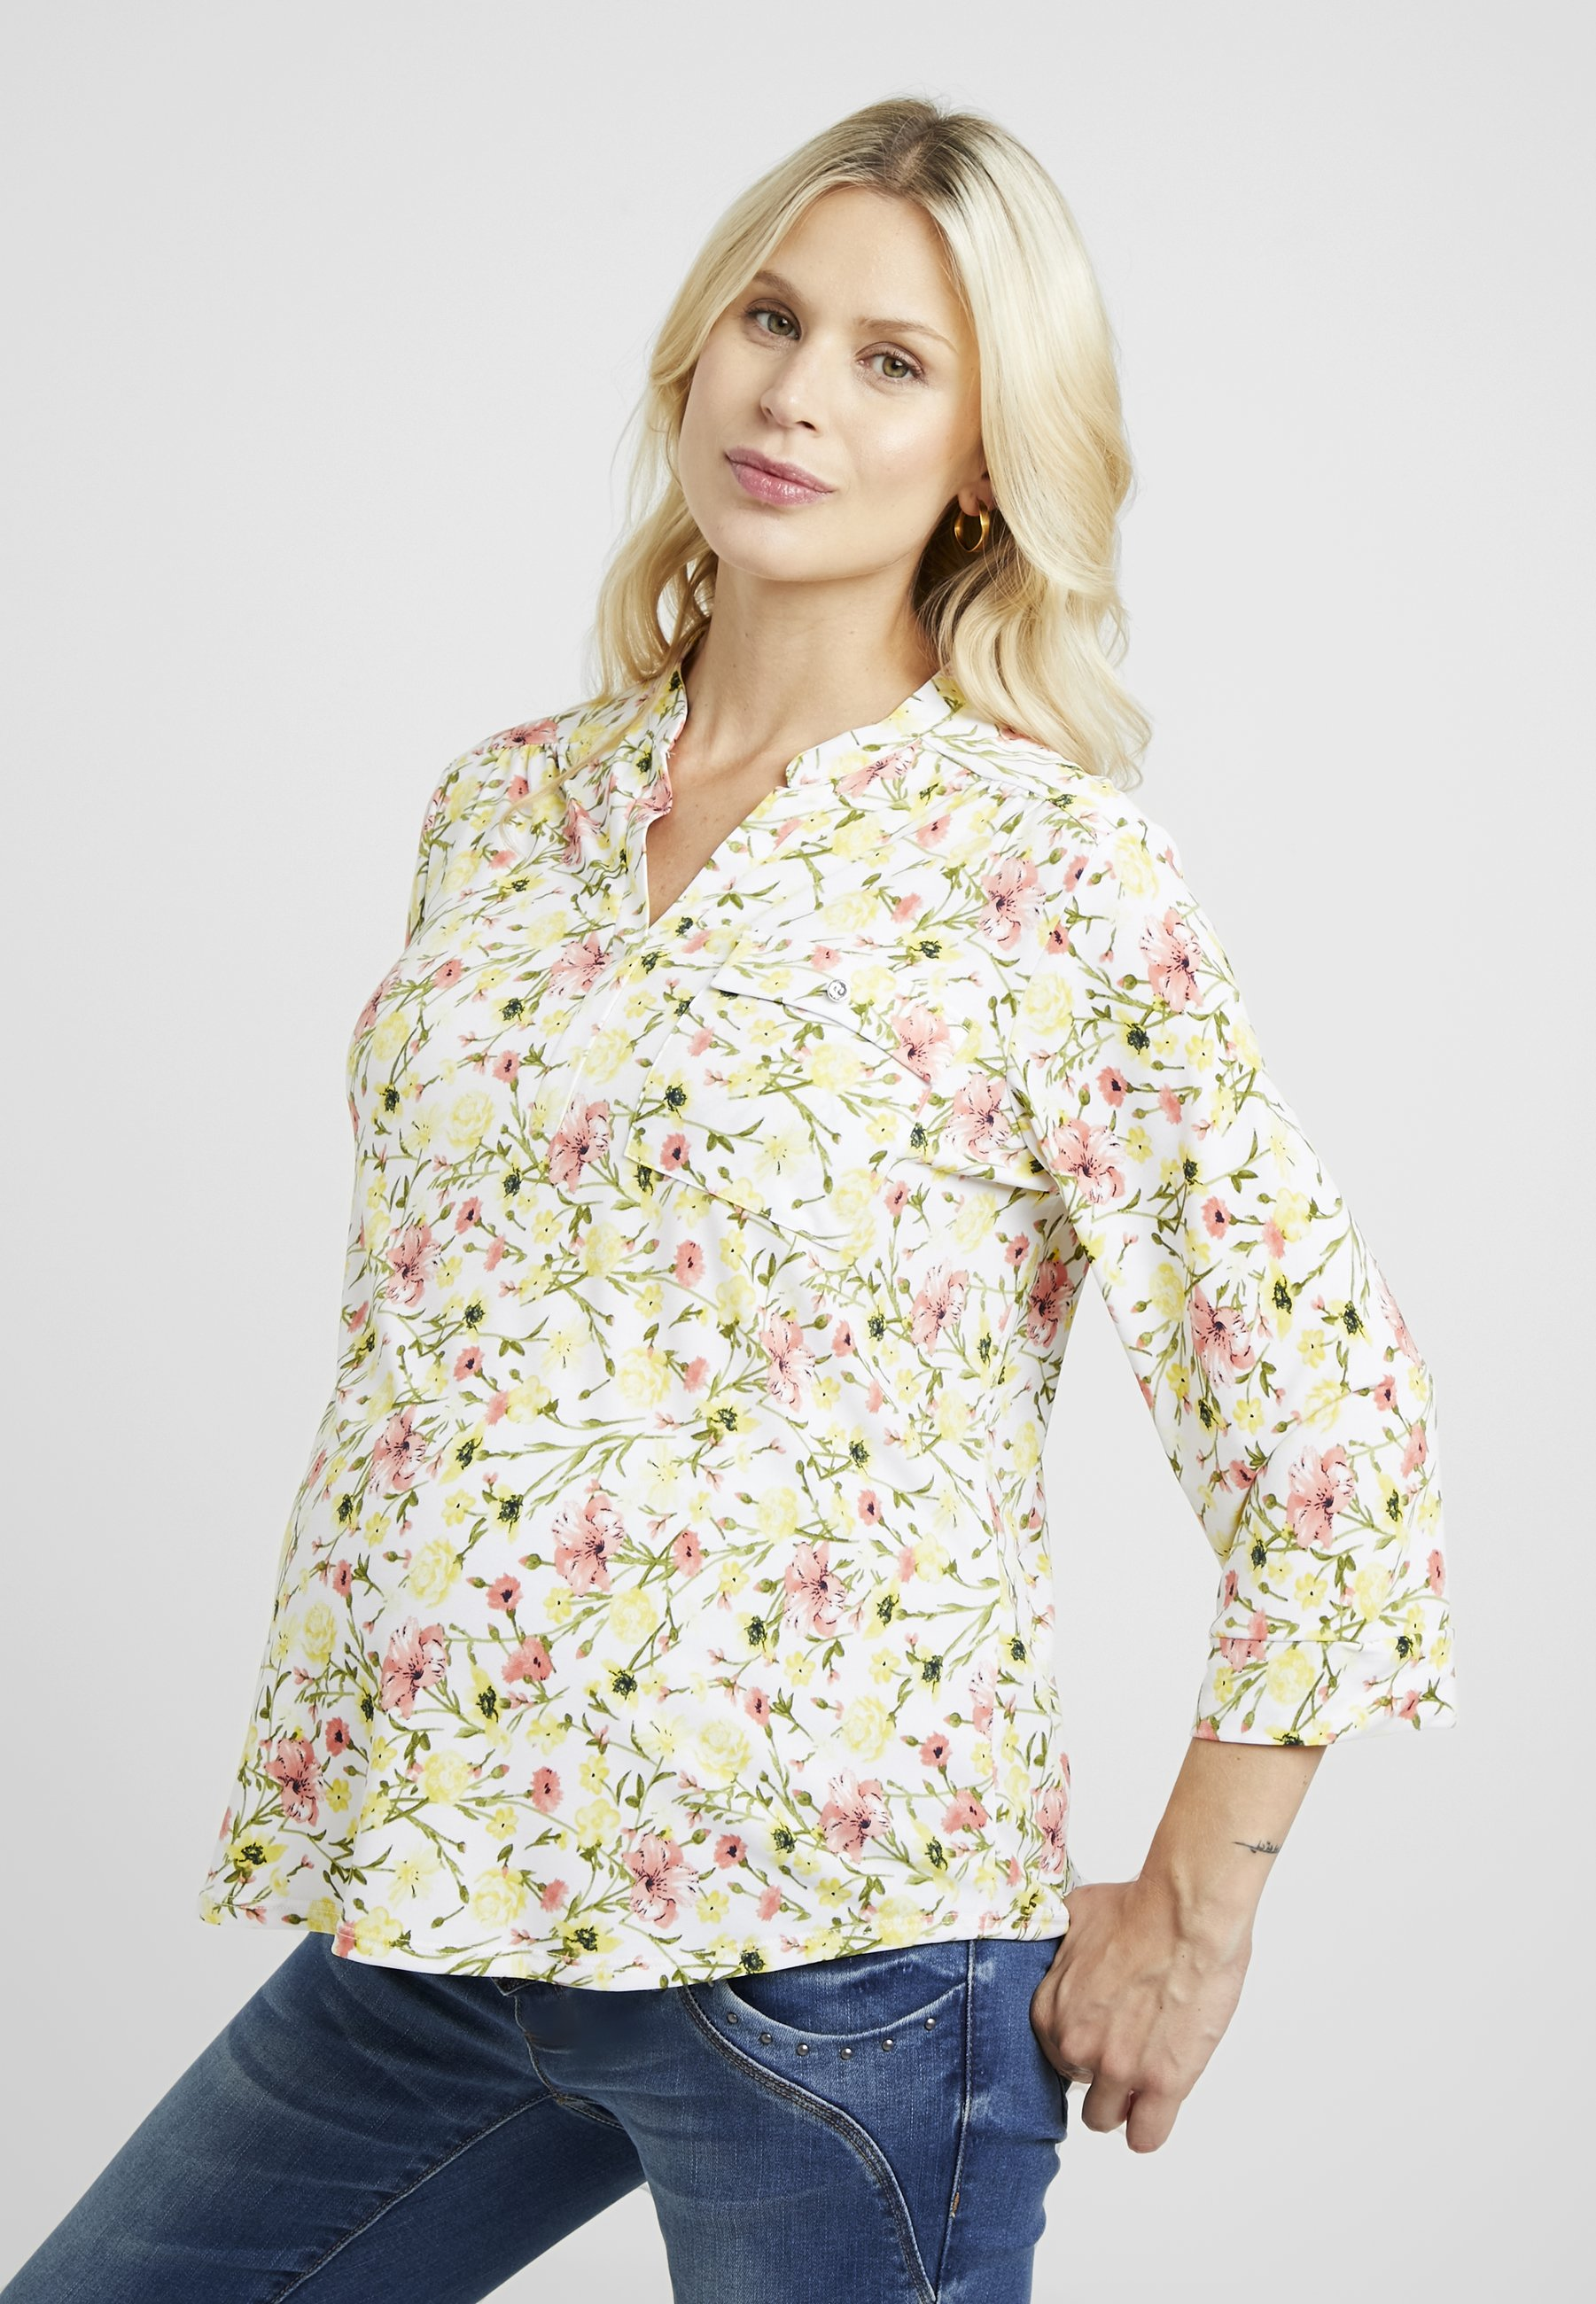 Perkins Manches shirt ItyT Maternity Bright Longues À Dorothy Floral 7yYgb6Ifv